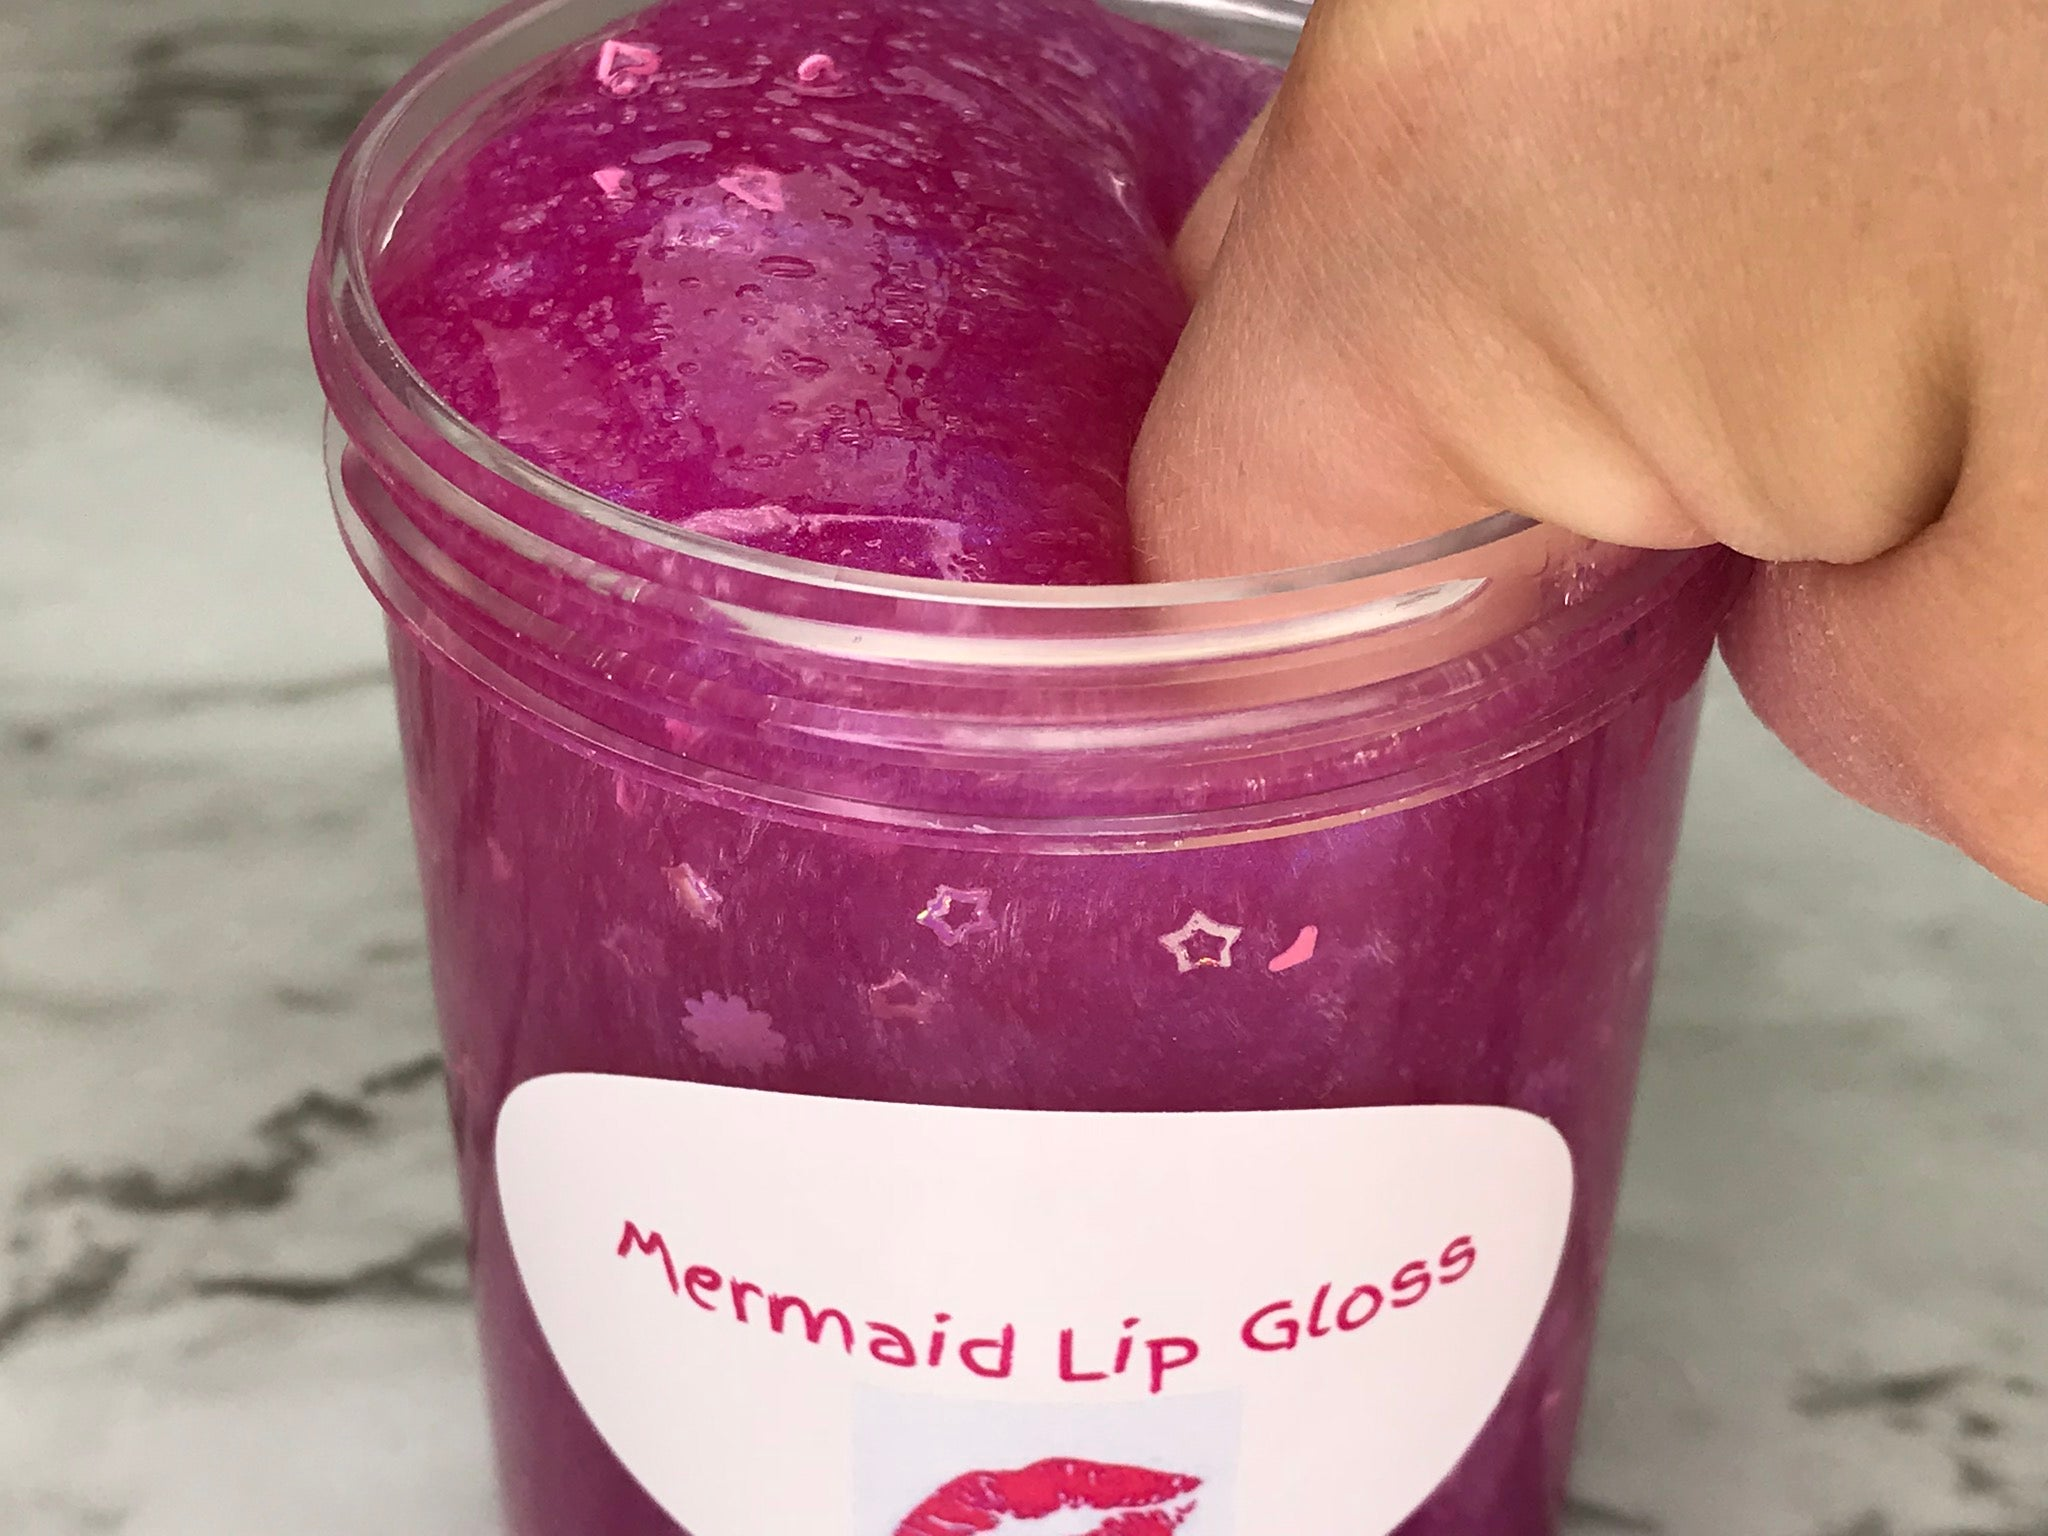 Mermaid Lip Gloss Slime